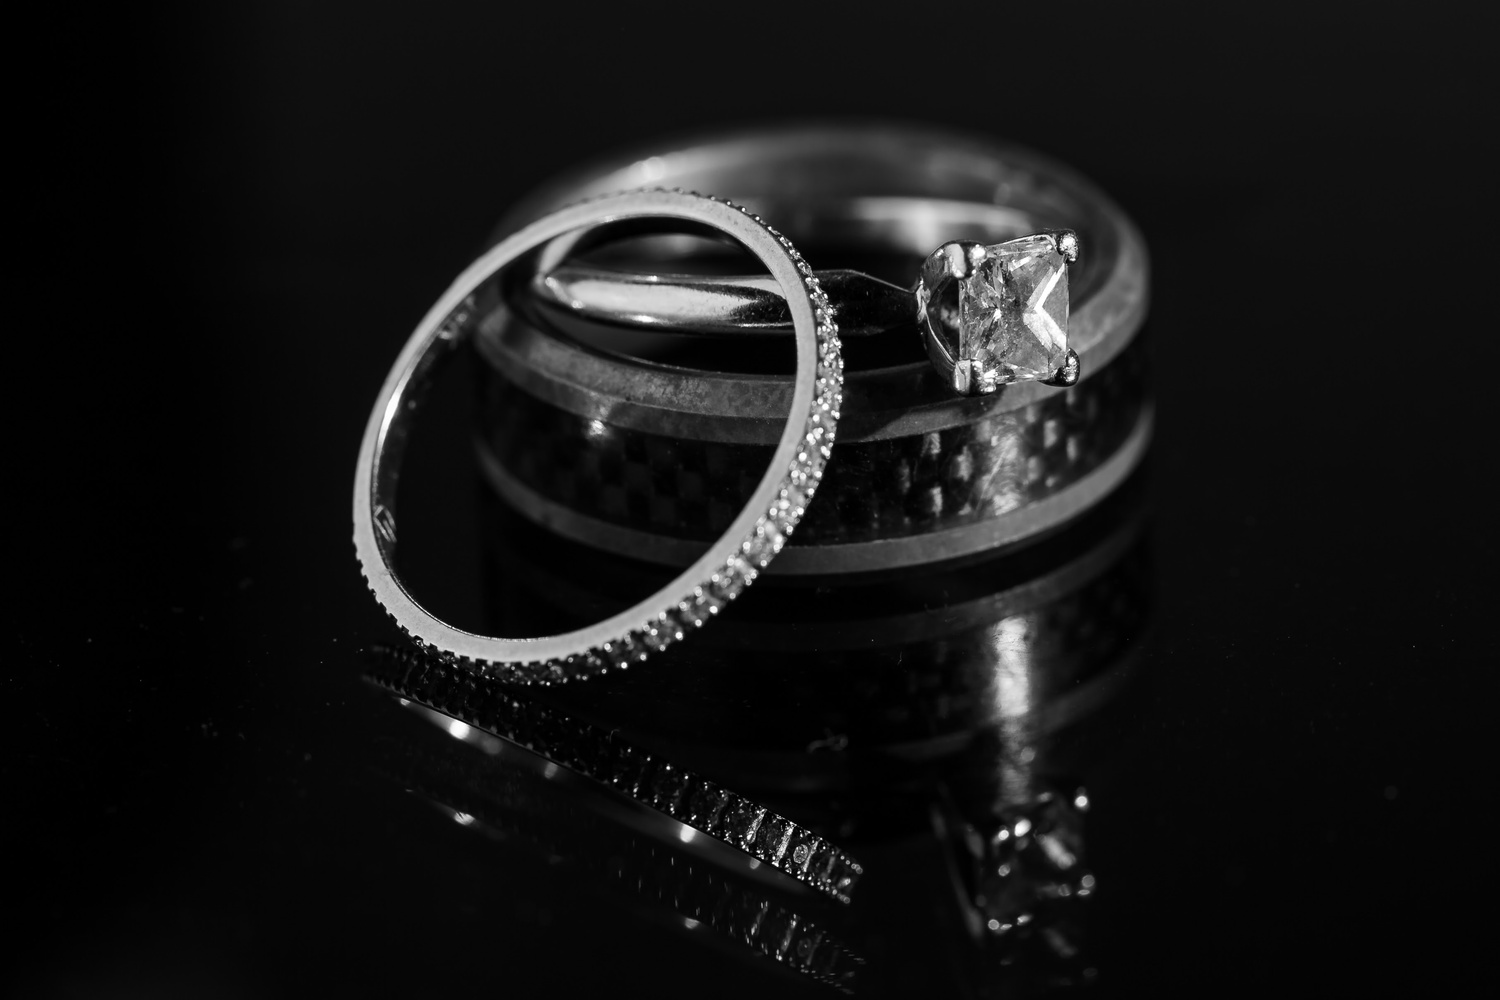 Ring shot by Thomas Galante